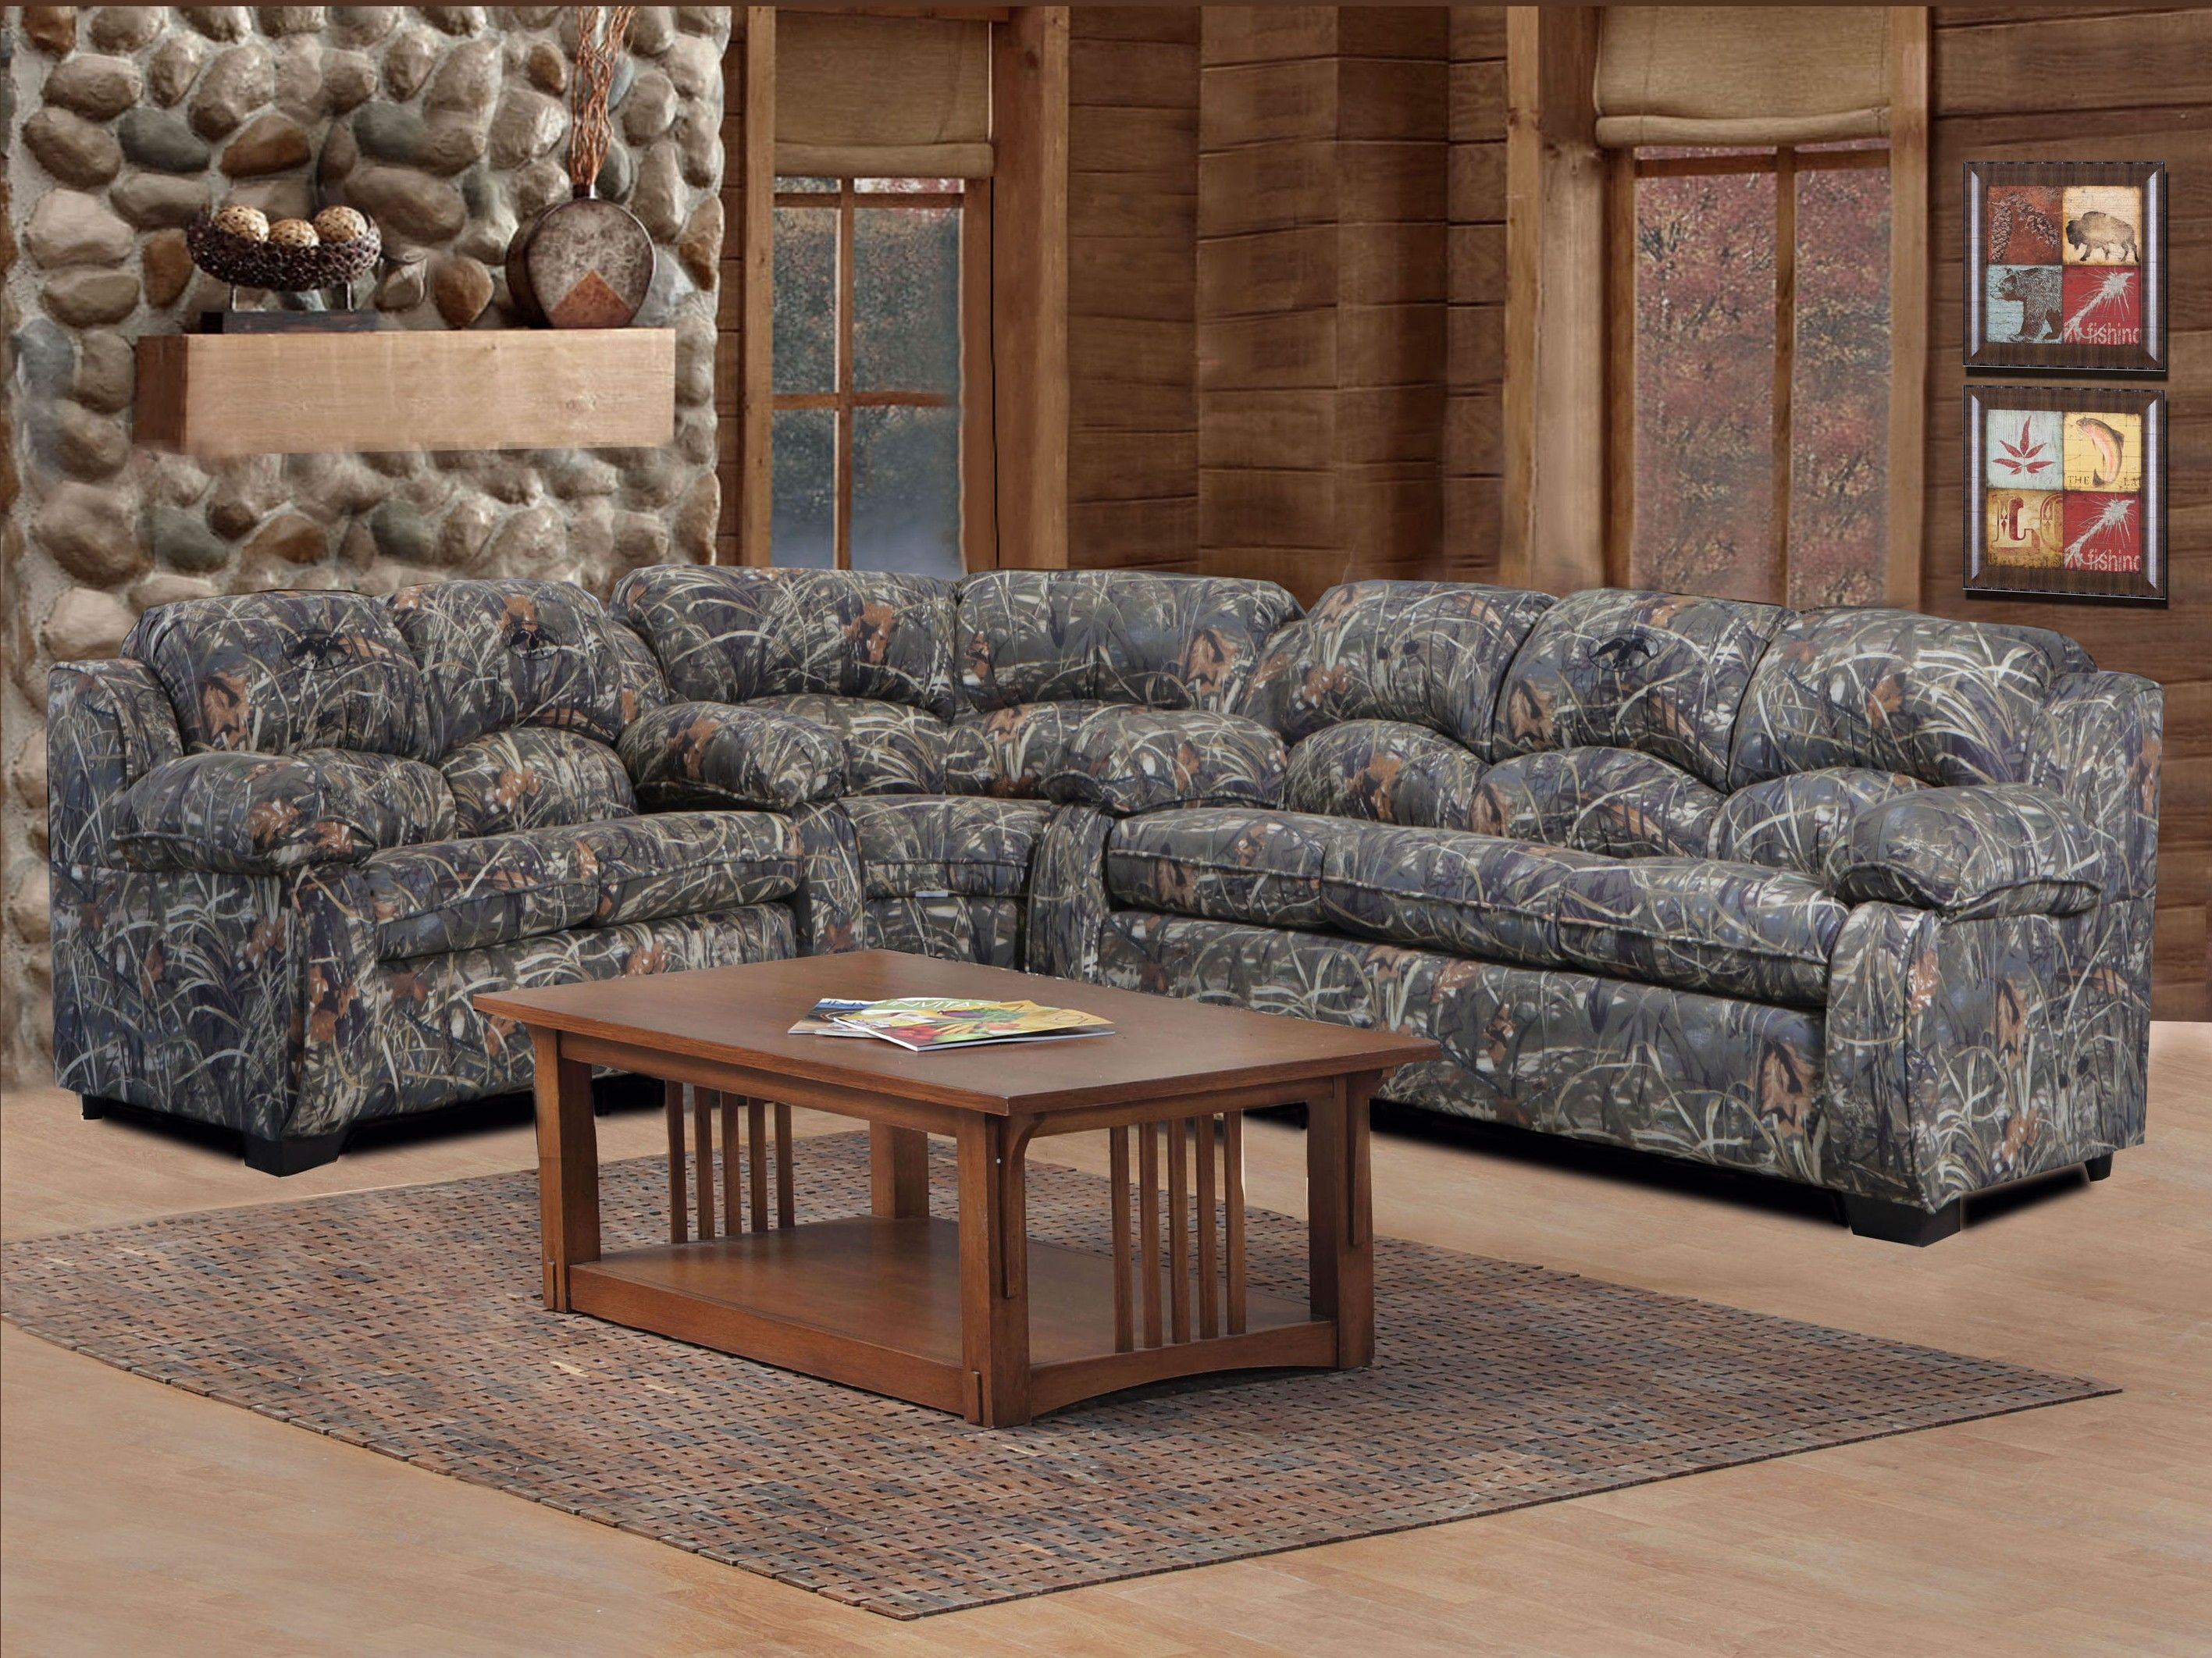 Sleeper Sofas Duck Commander Sectional Piece Sofa Loveseat and Wedge Duck Dynasty Camouflage